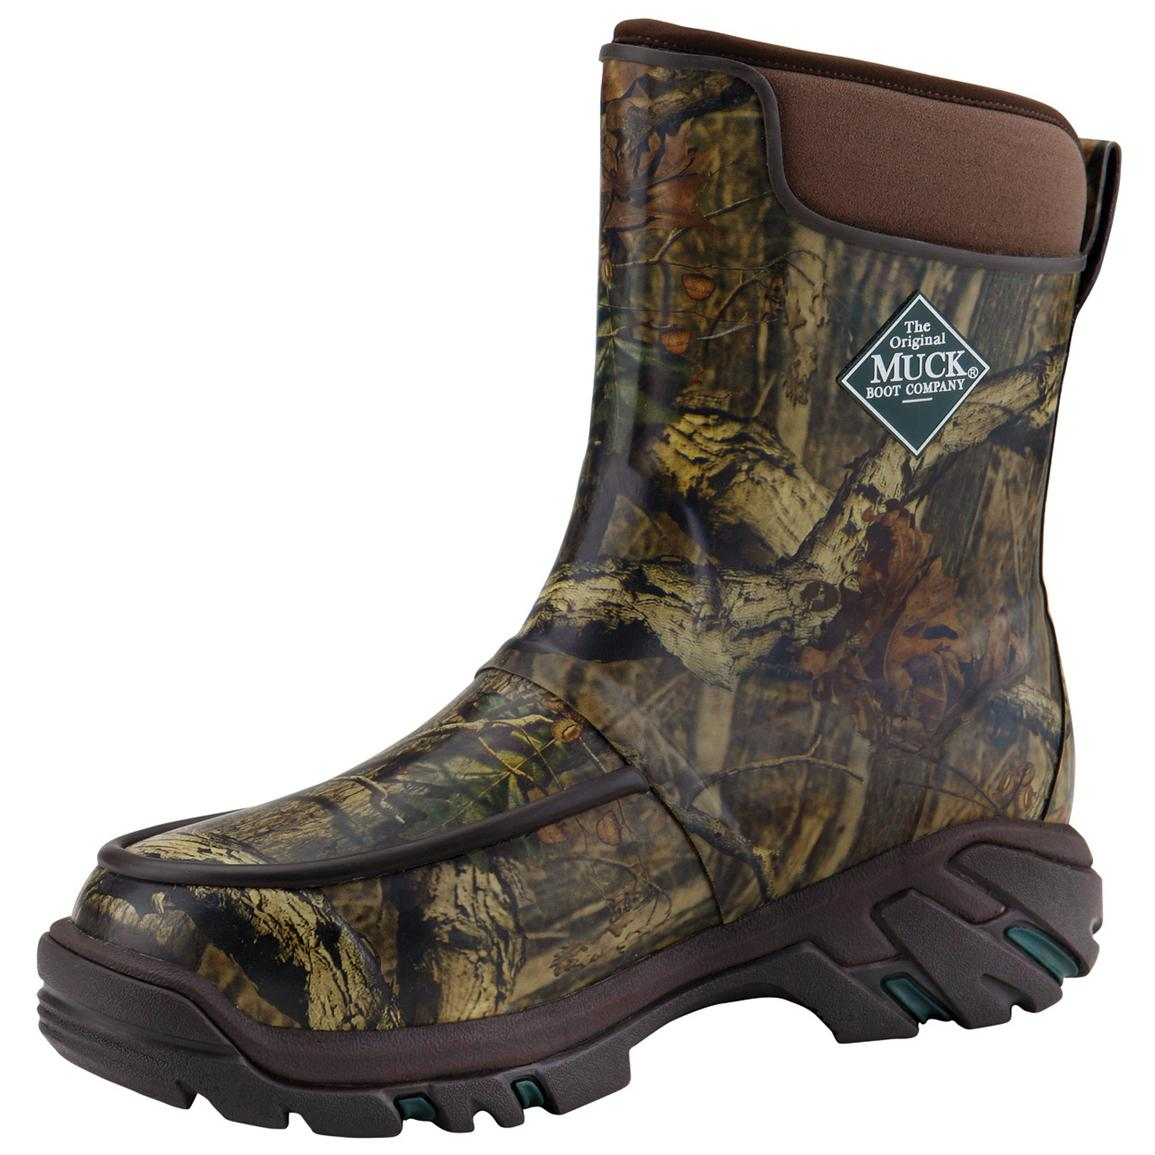 Muck Hunting Boots 9boiK0h9